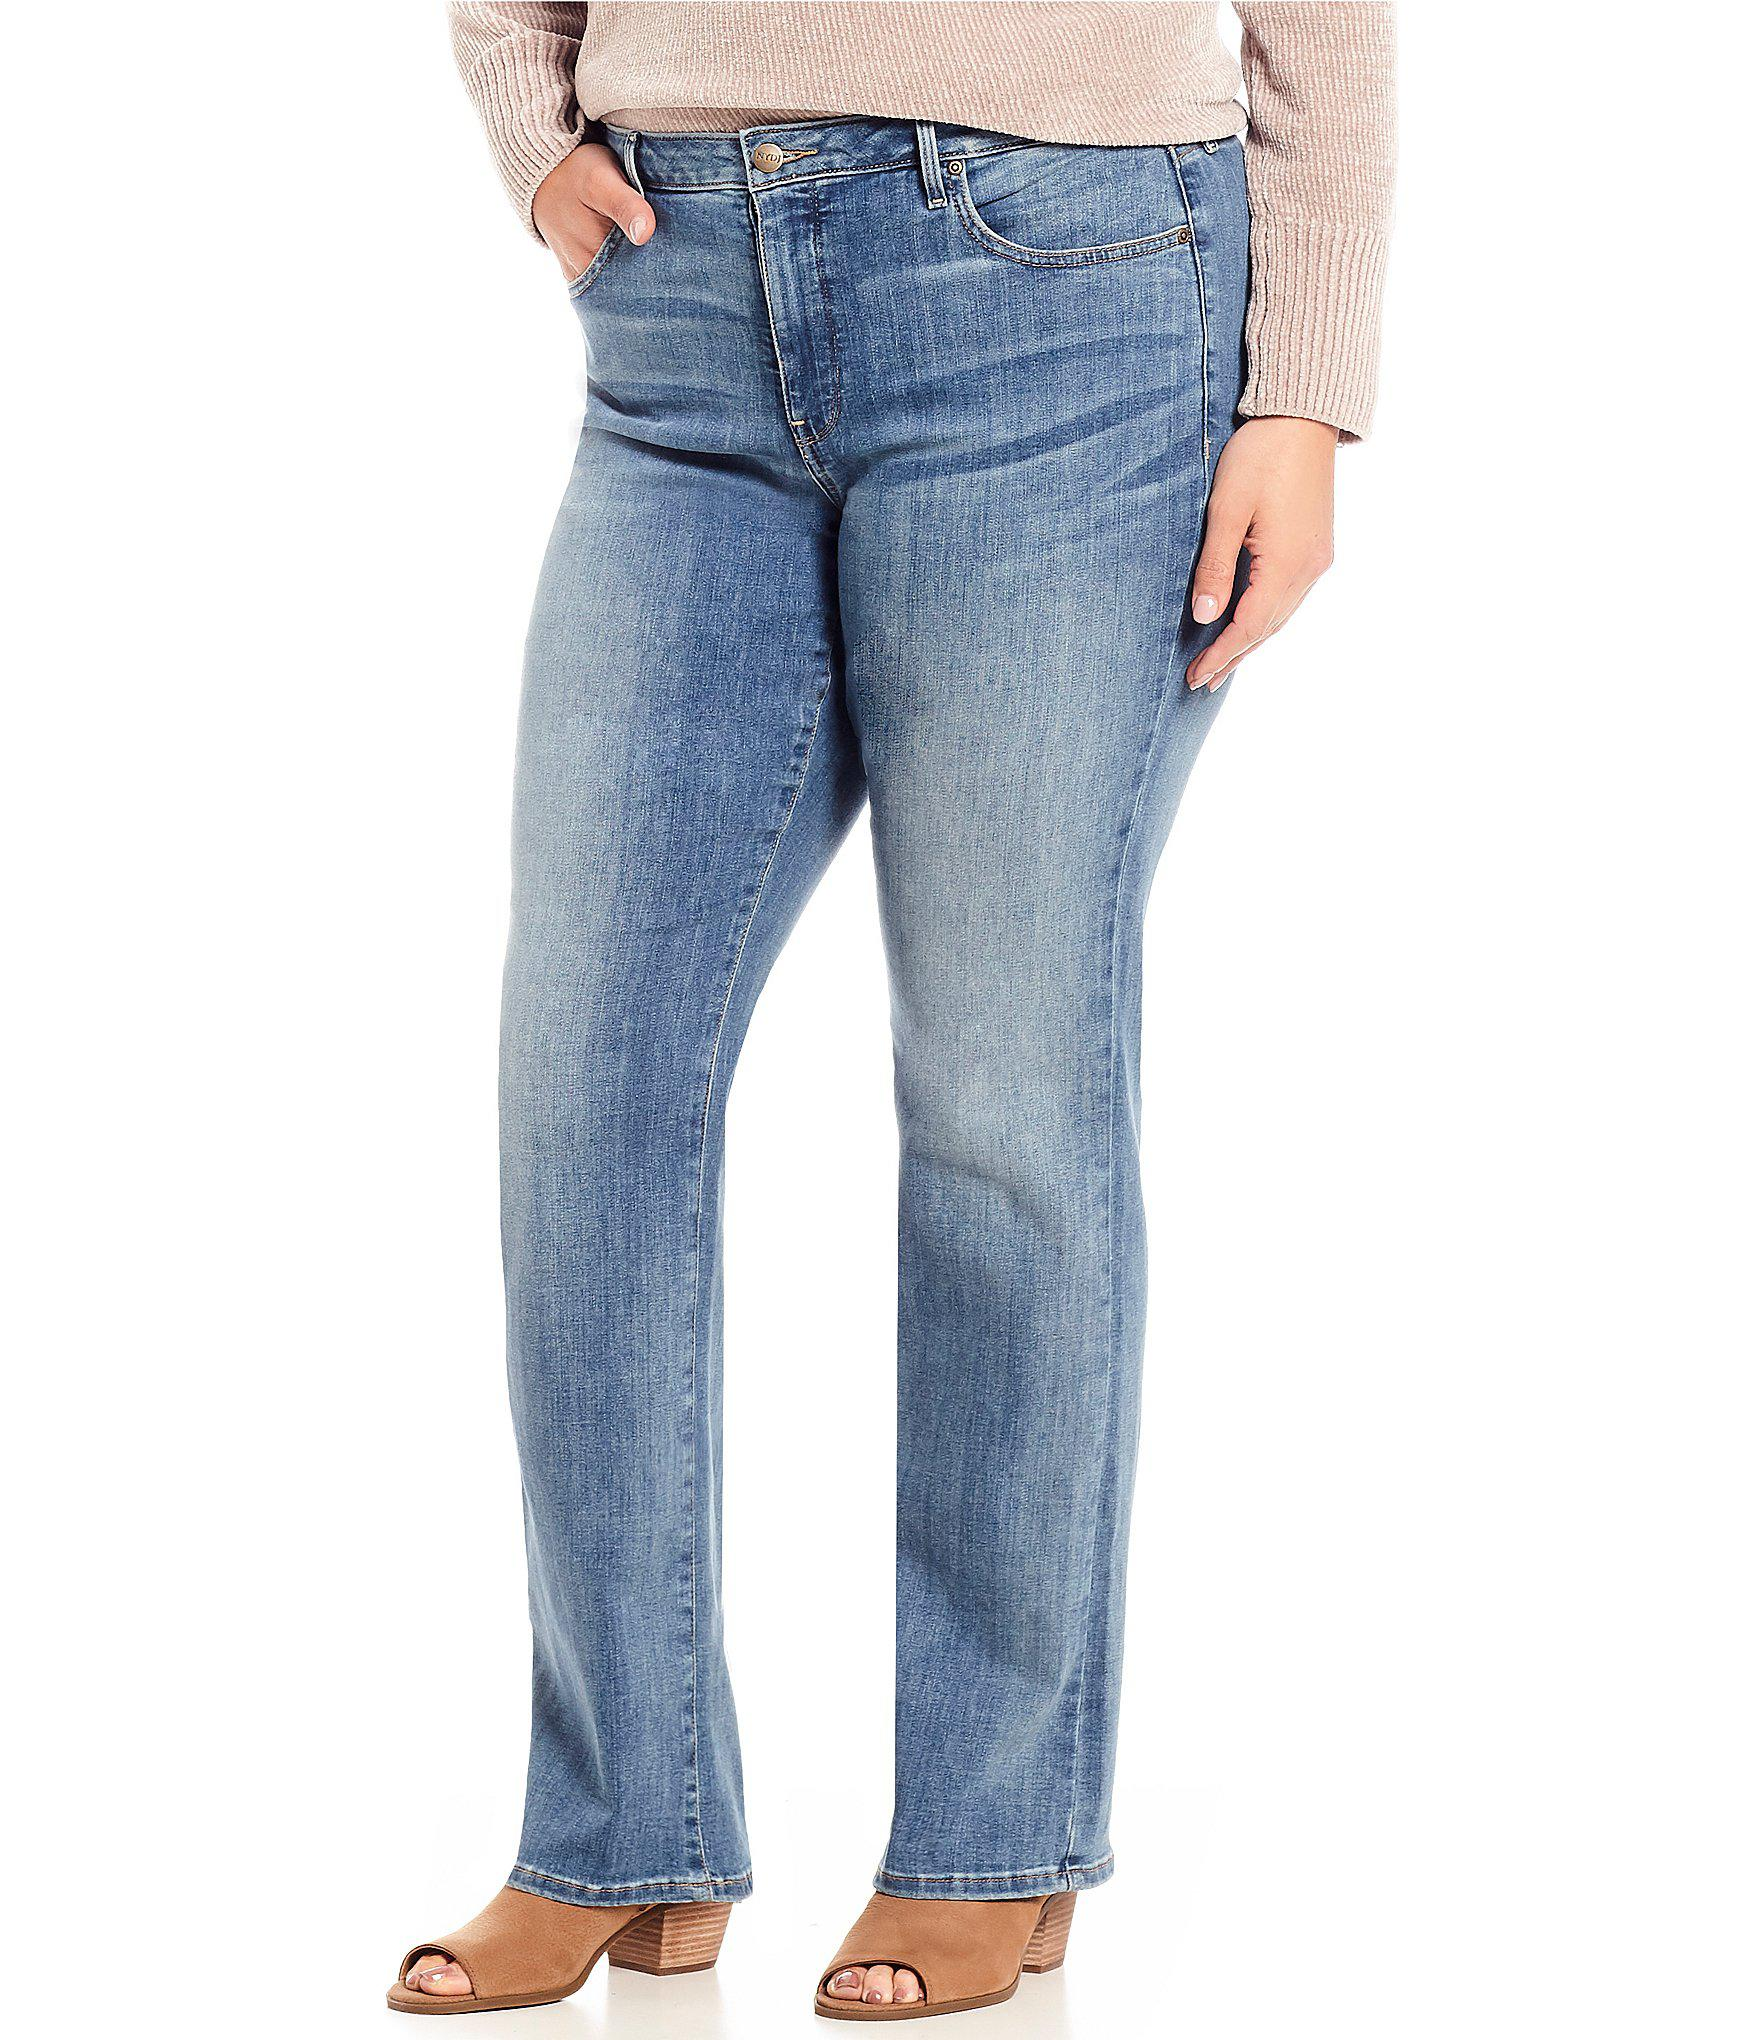 c378d9837ae Lyst - Nydj Plus Size Barbara Bootcut Jeans in Blue